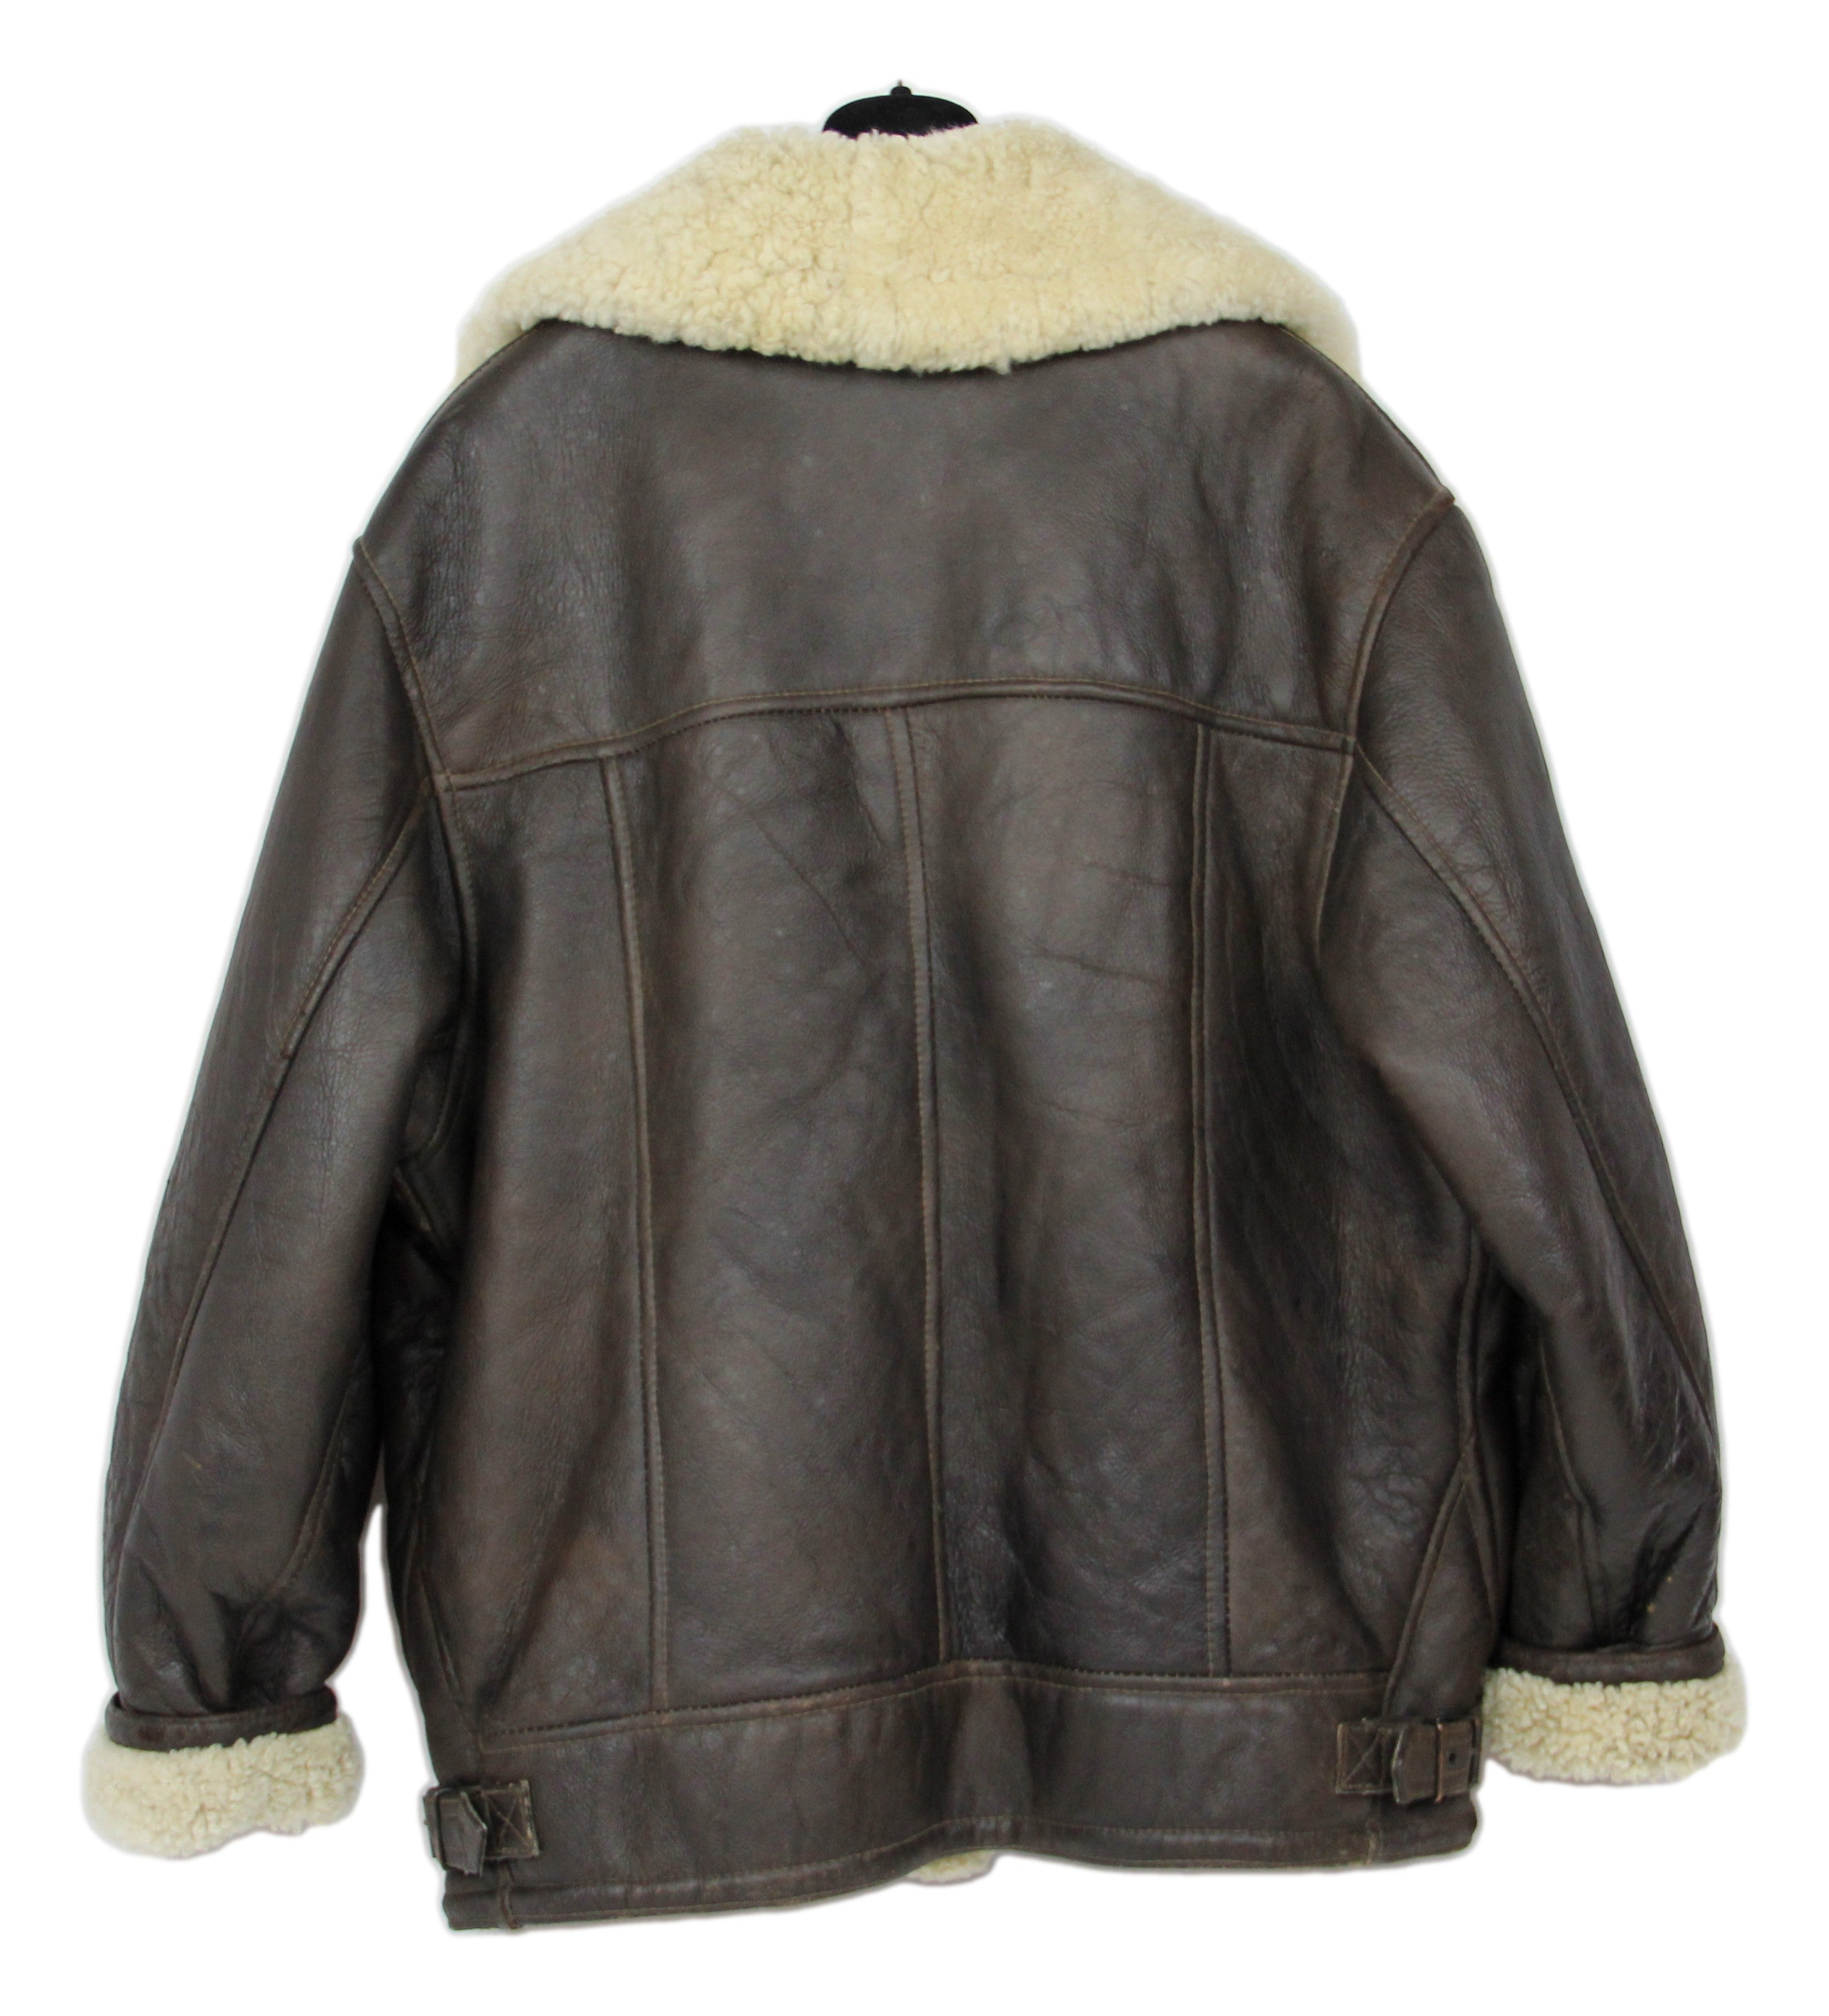 Hollies Brown Lambsfur Aviator Type B Style Shearling Jacket, SIZE L